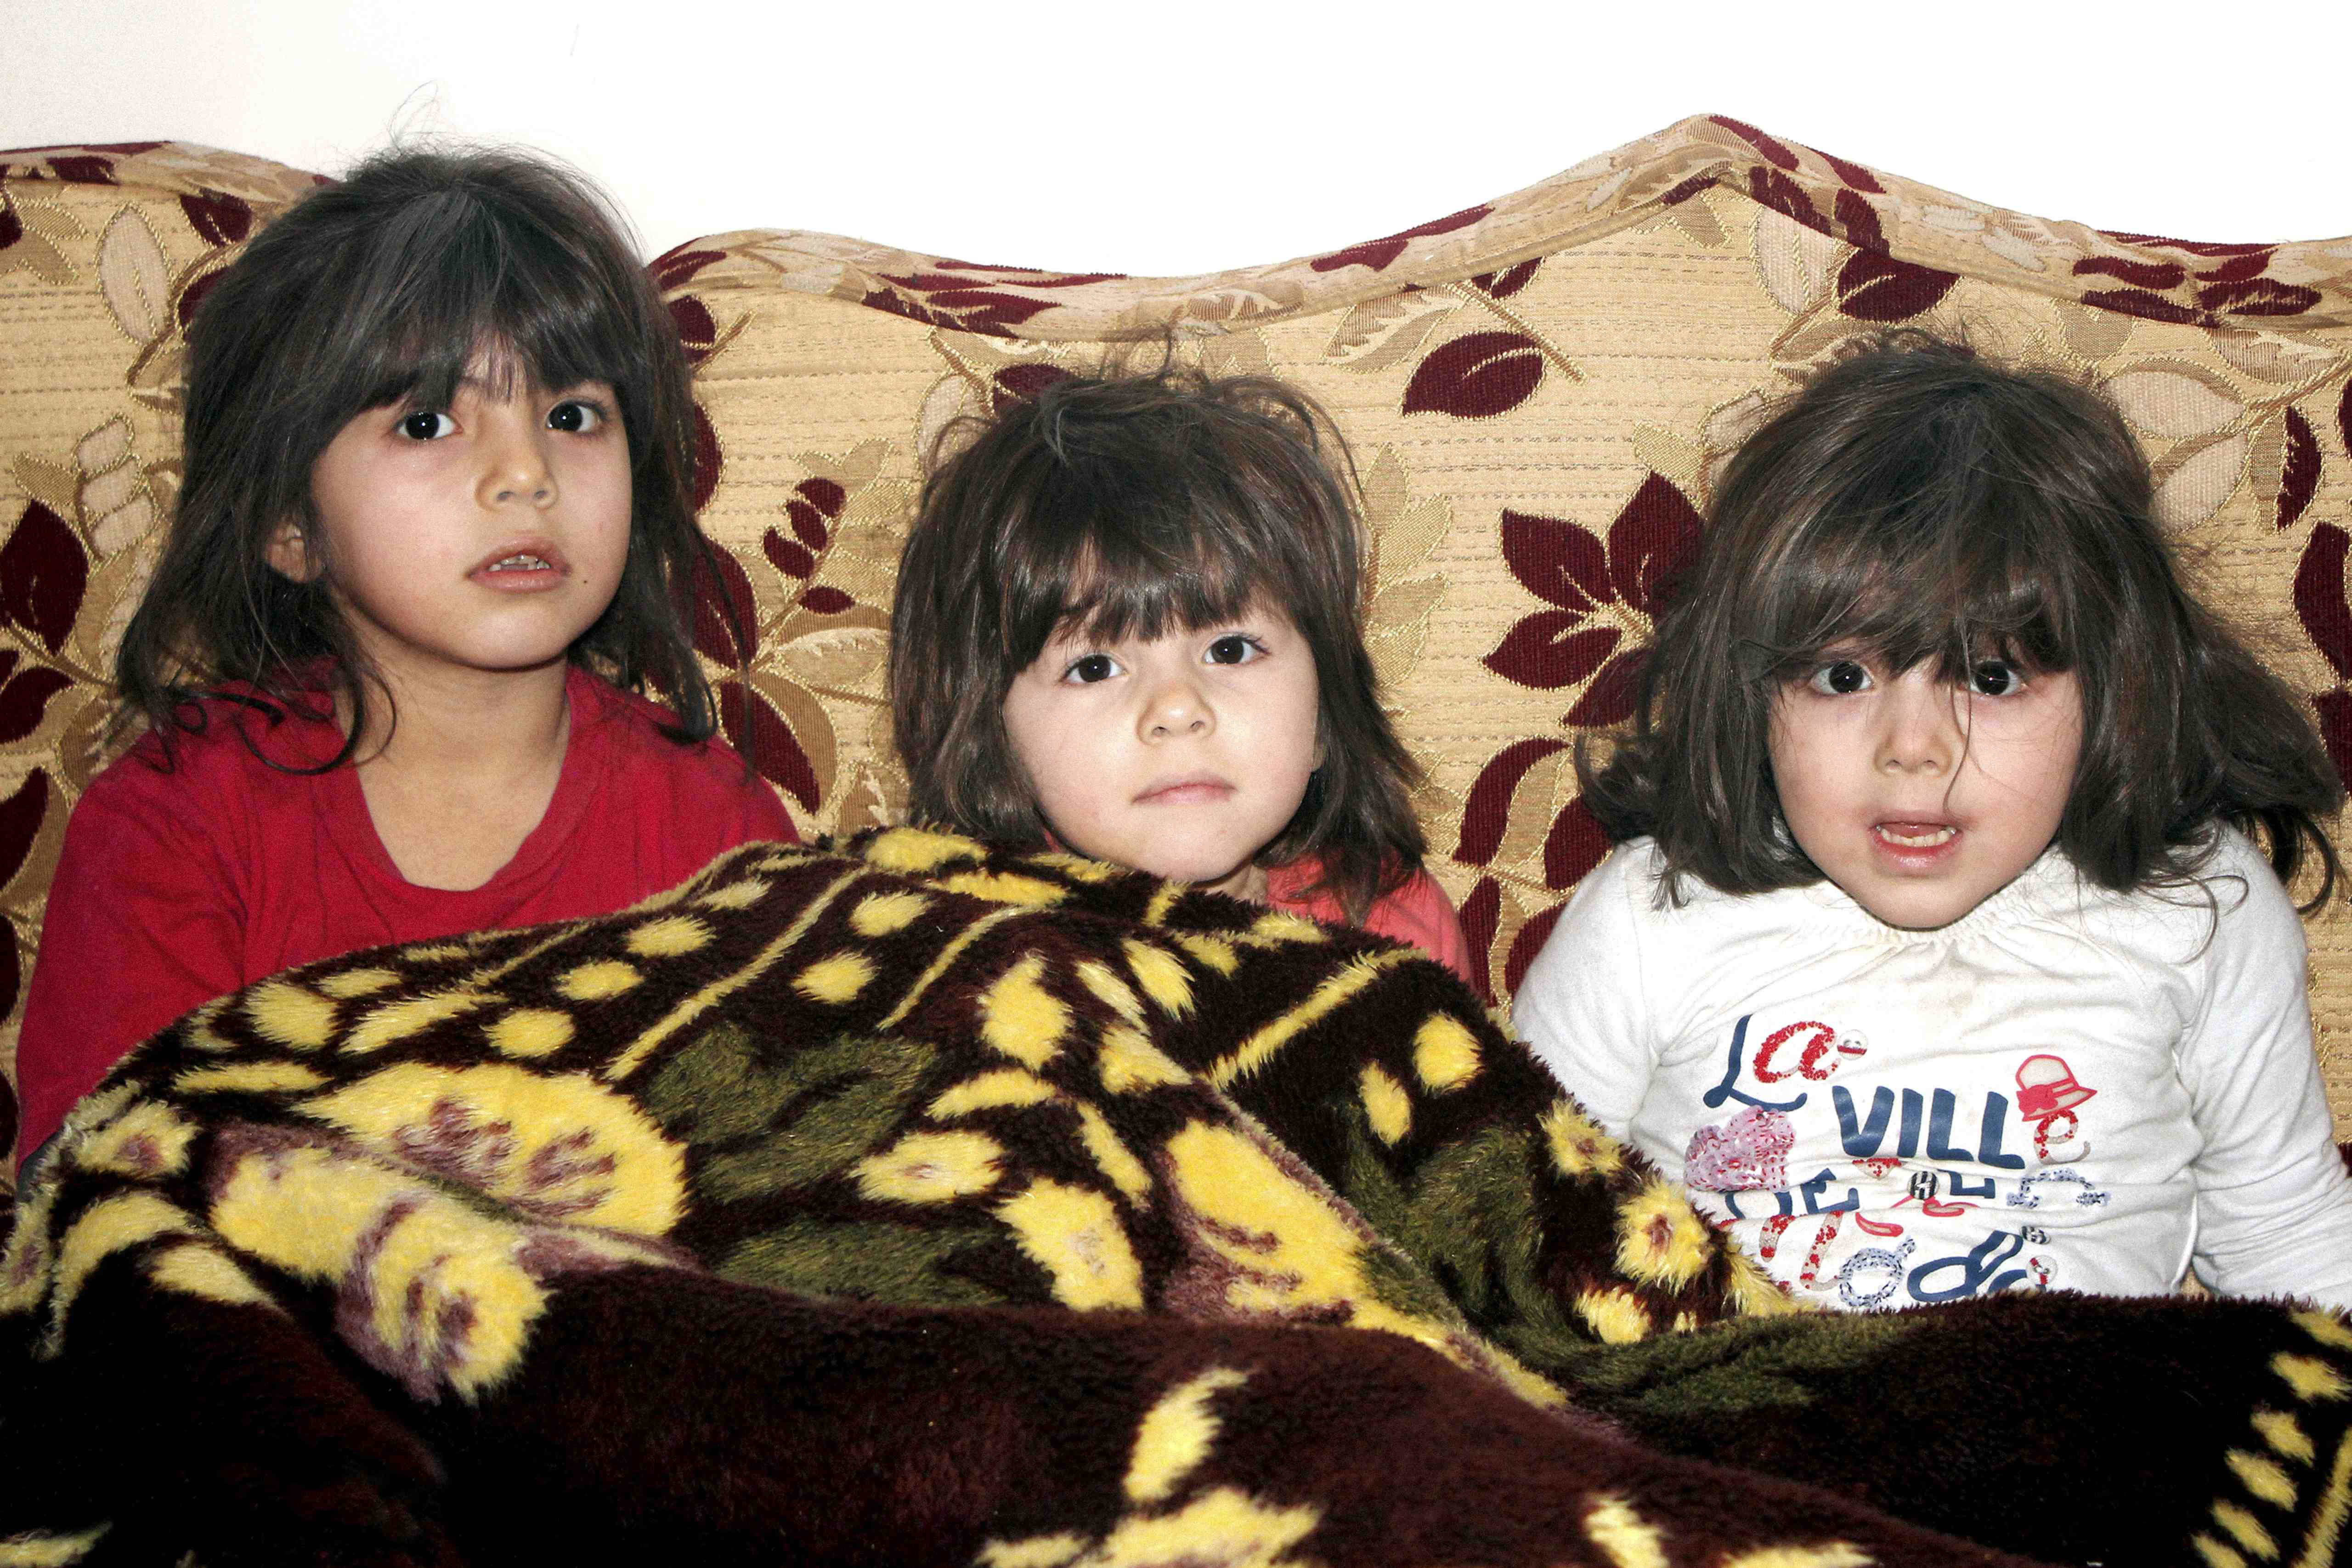 Photo of three young girls in the city of Deir Ezzor (Potographer: Hayyan al-Yousouf)